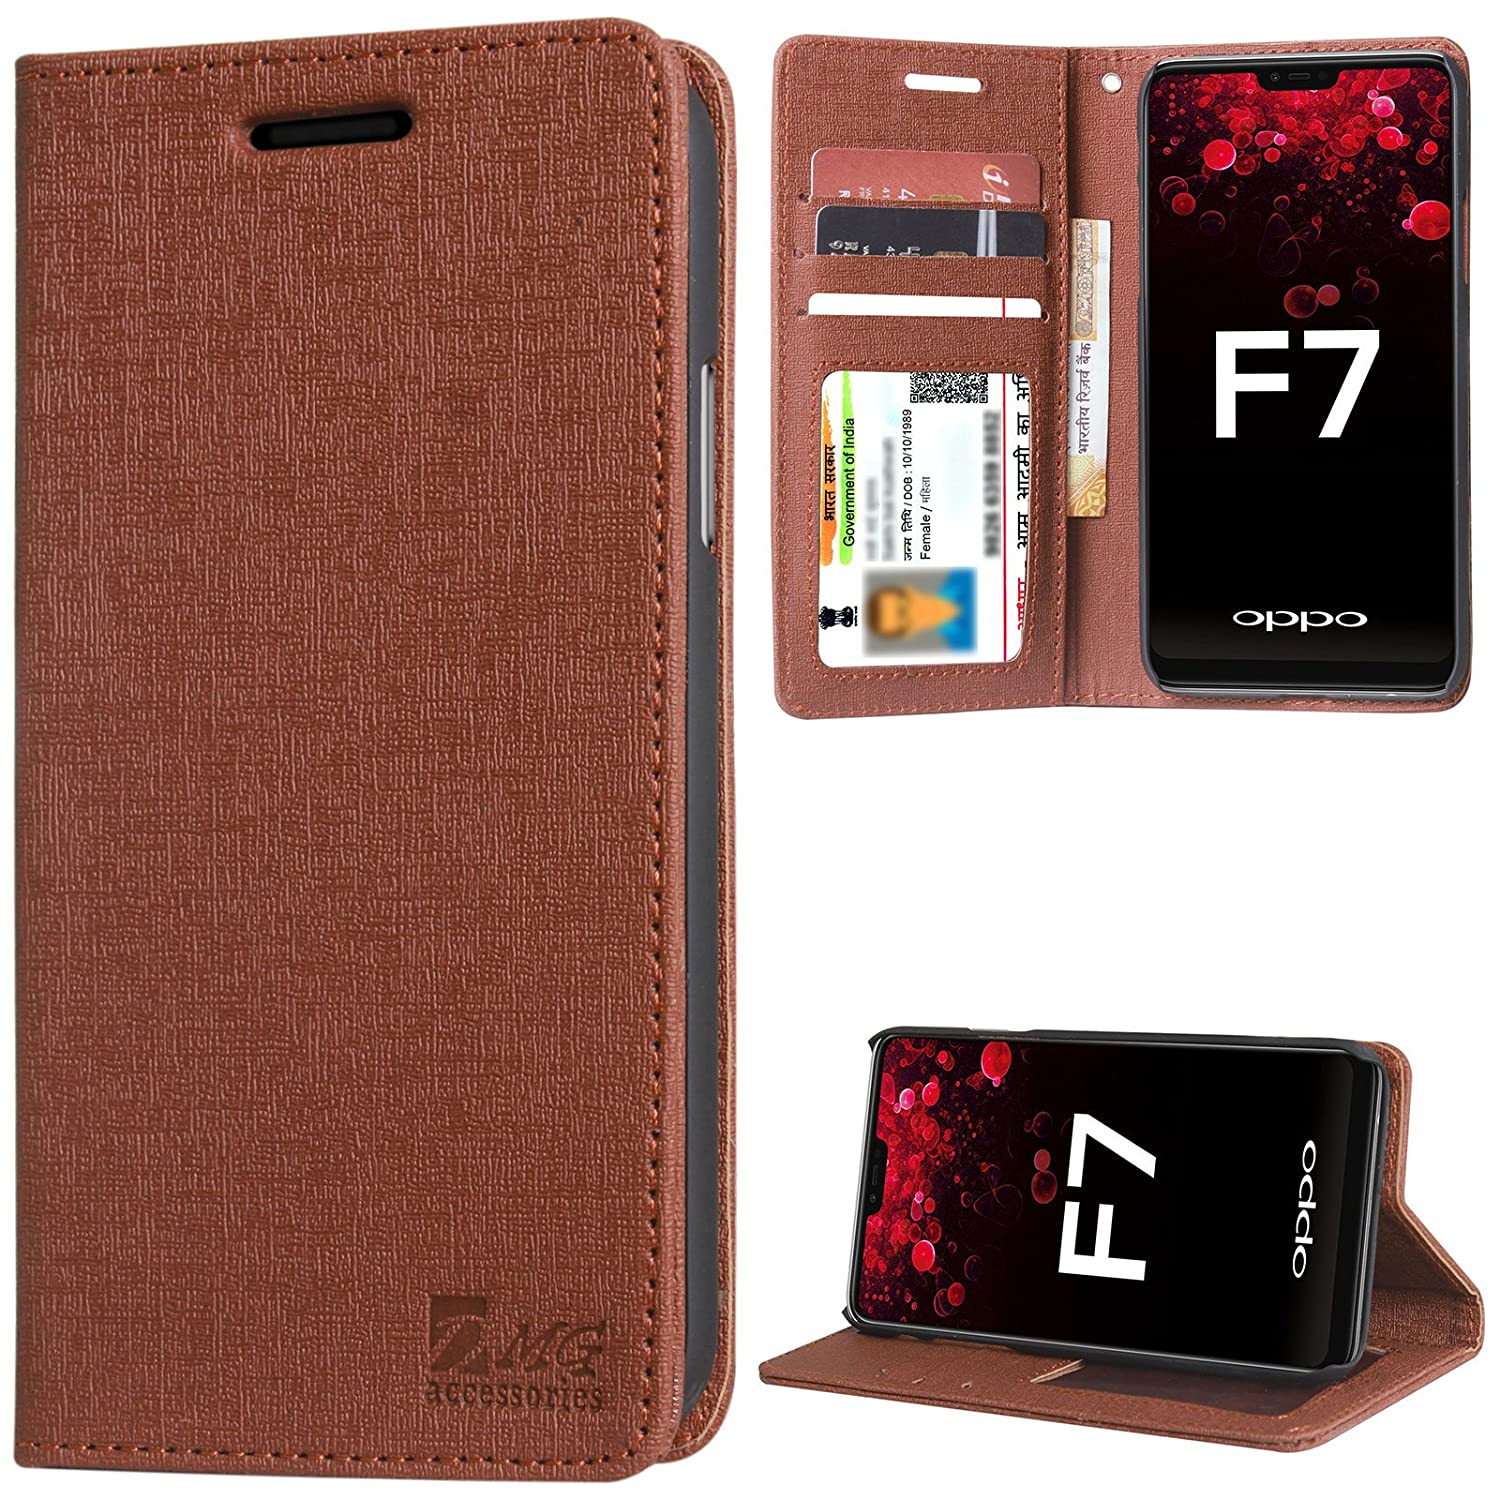 cheap for discount e36dc 22968 DMG Leather Flip Cover for Oppo F7, Wallet Flip Cover Stand Case for Oppo  F7 (Texture ID Brown)